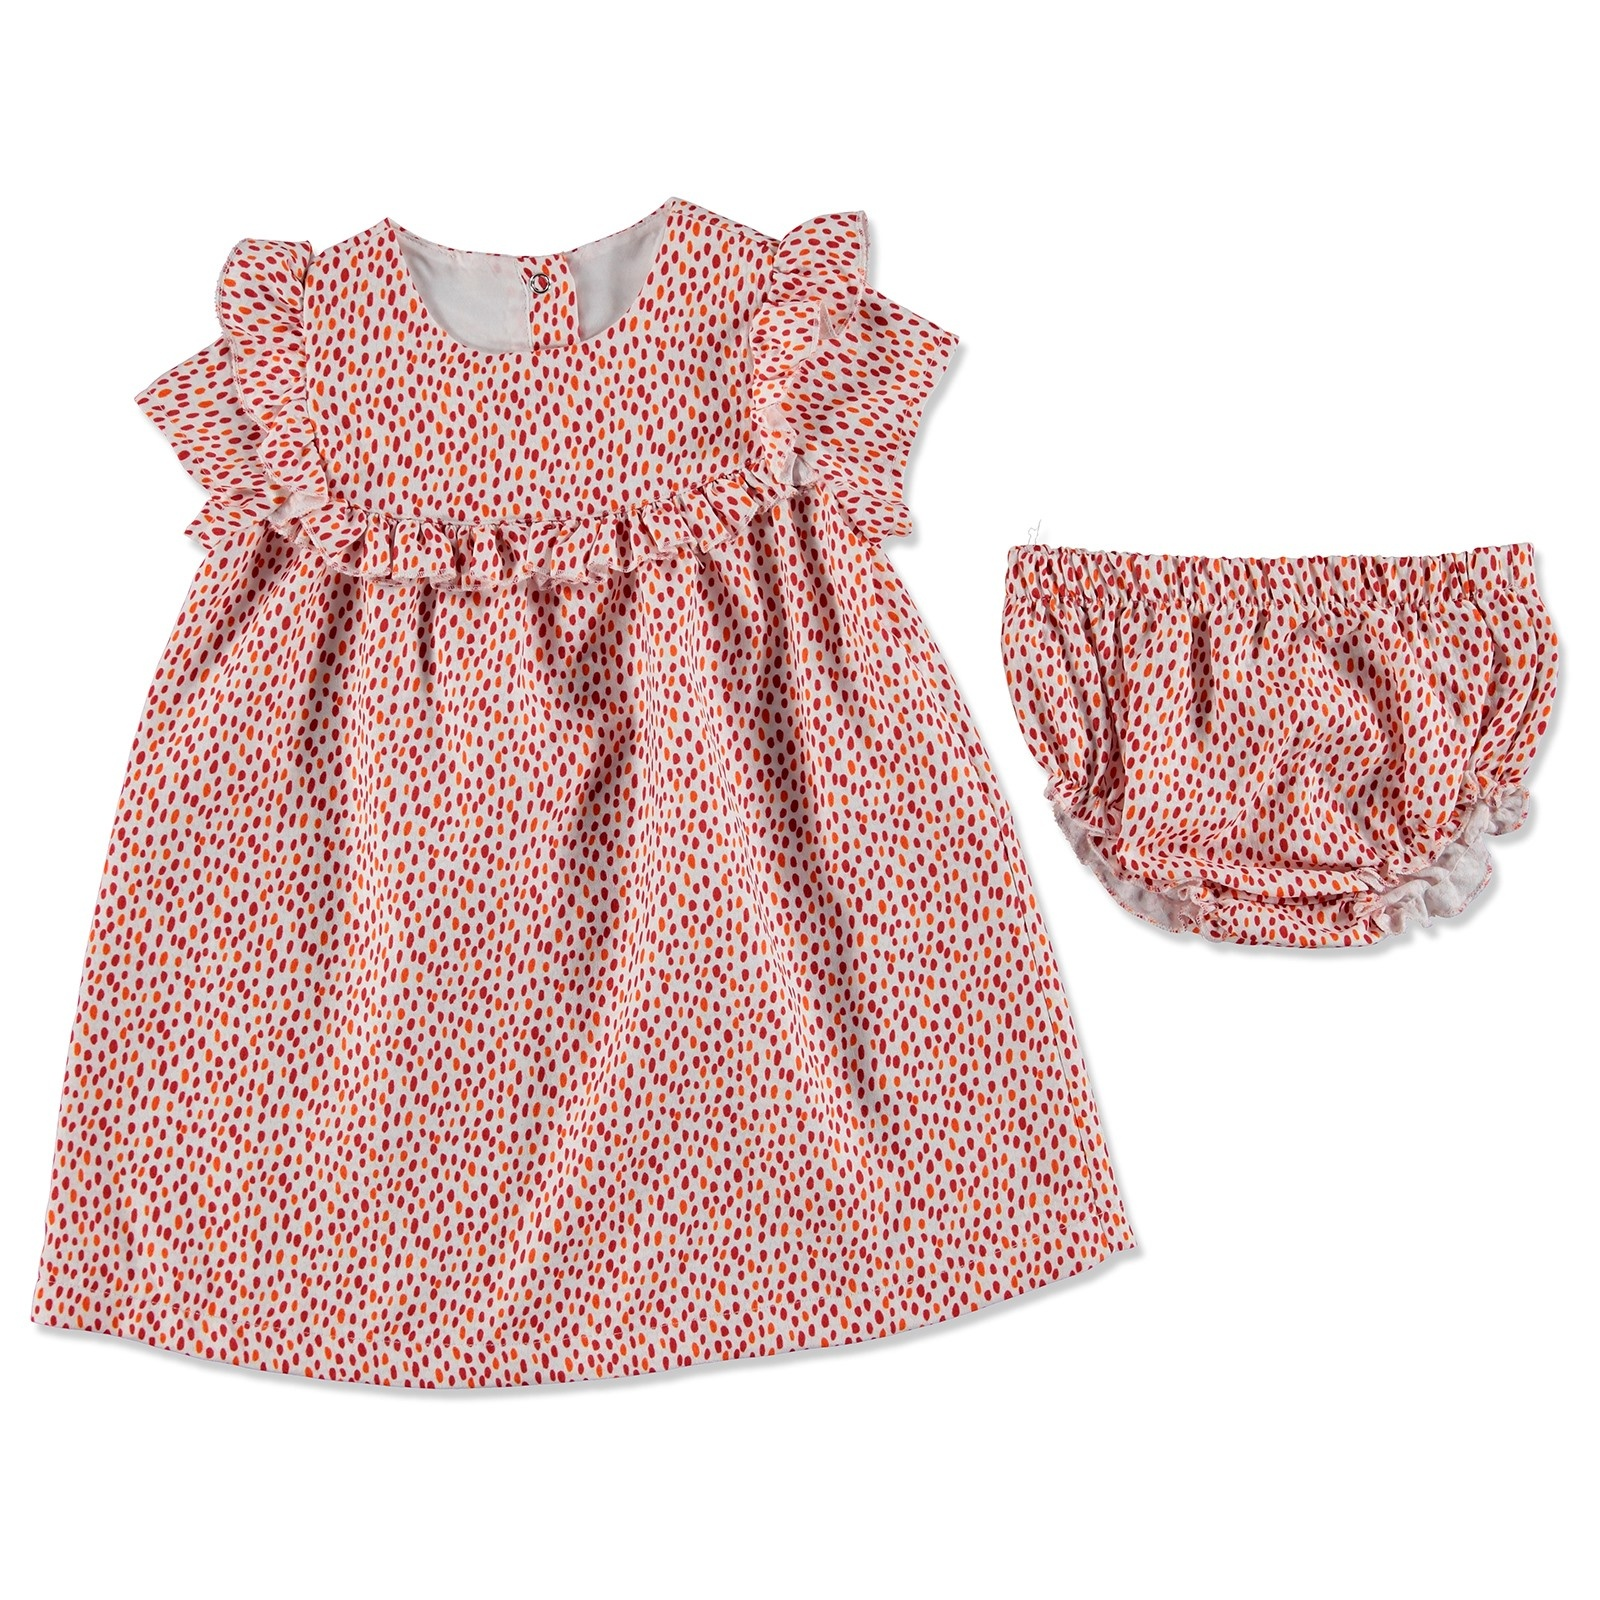 Ebebek Bombili Summer Baby Girl Gabardine Crew-Neck Dress